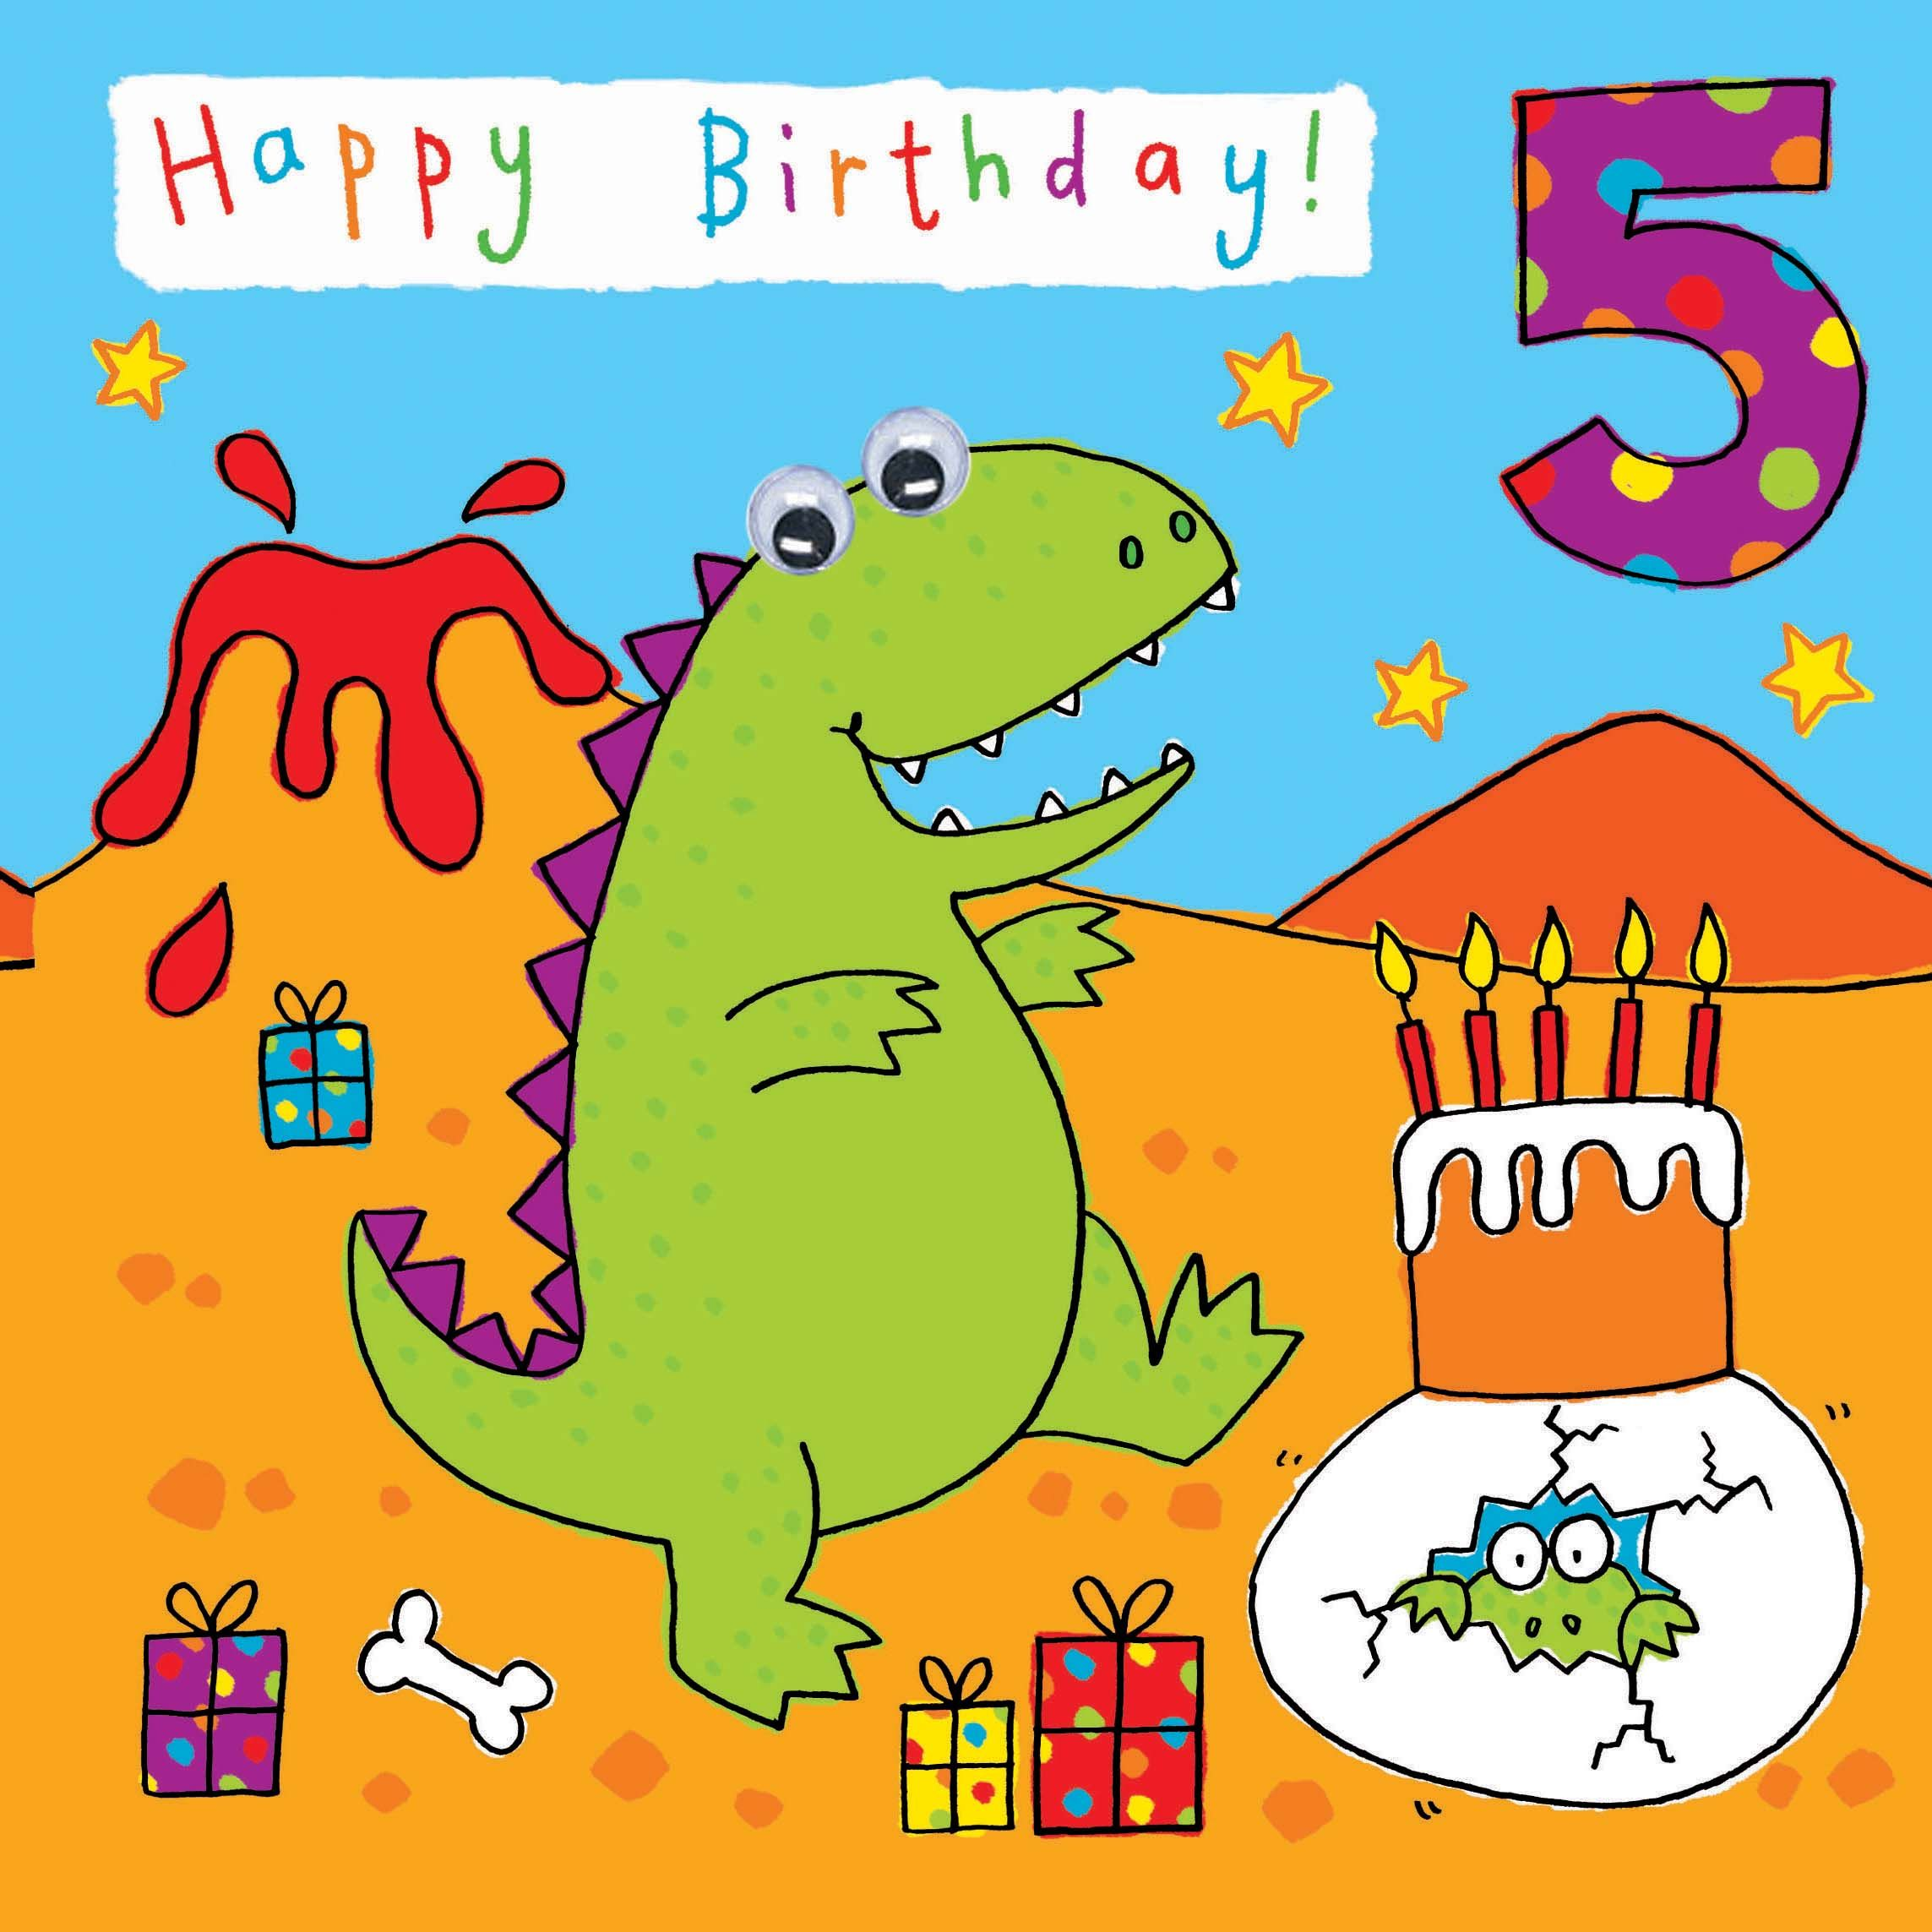 Image Result For Happy 5 Years Old Birthday Birthday Cards For Boys Kids Birthday Cards Birthday Card Printable